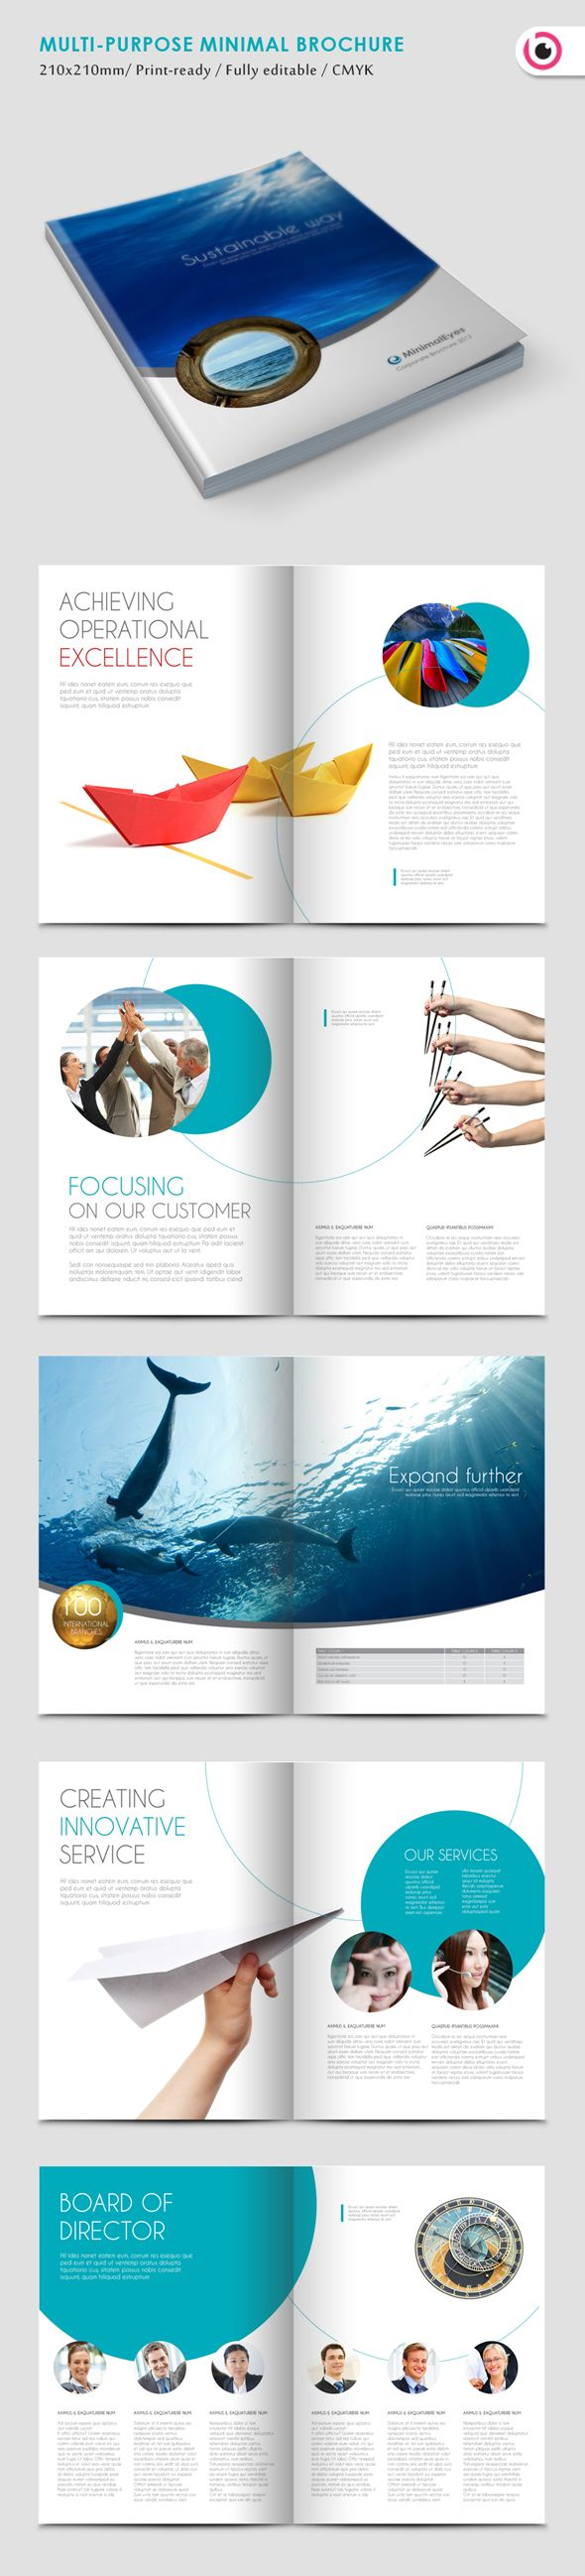 Wonderful 1 Page Resume Format Free Download Tall 100 Free Resume Builder And Download Flat 100 Free Resume Builder Online 1099 Contract Template Young 15 Year Old Resume Blue2 Circle Template 193 Best Images About Brochure Design \u0026 Layout On Pinterest ..